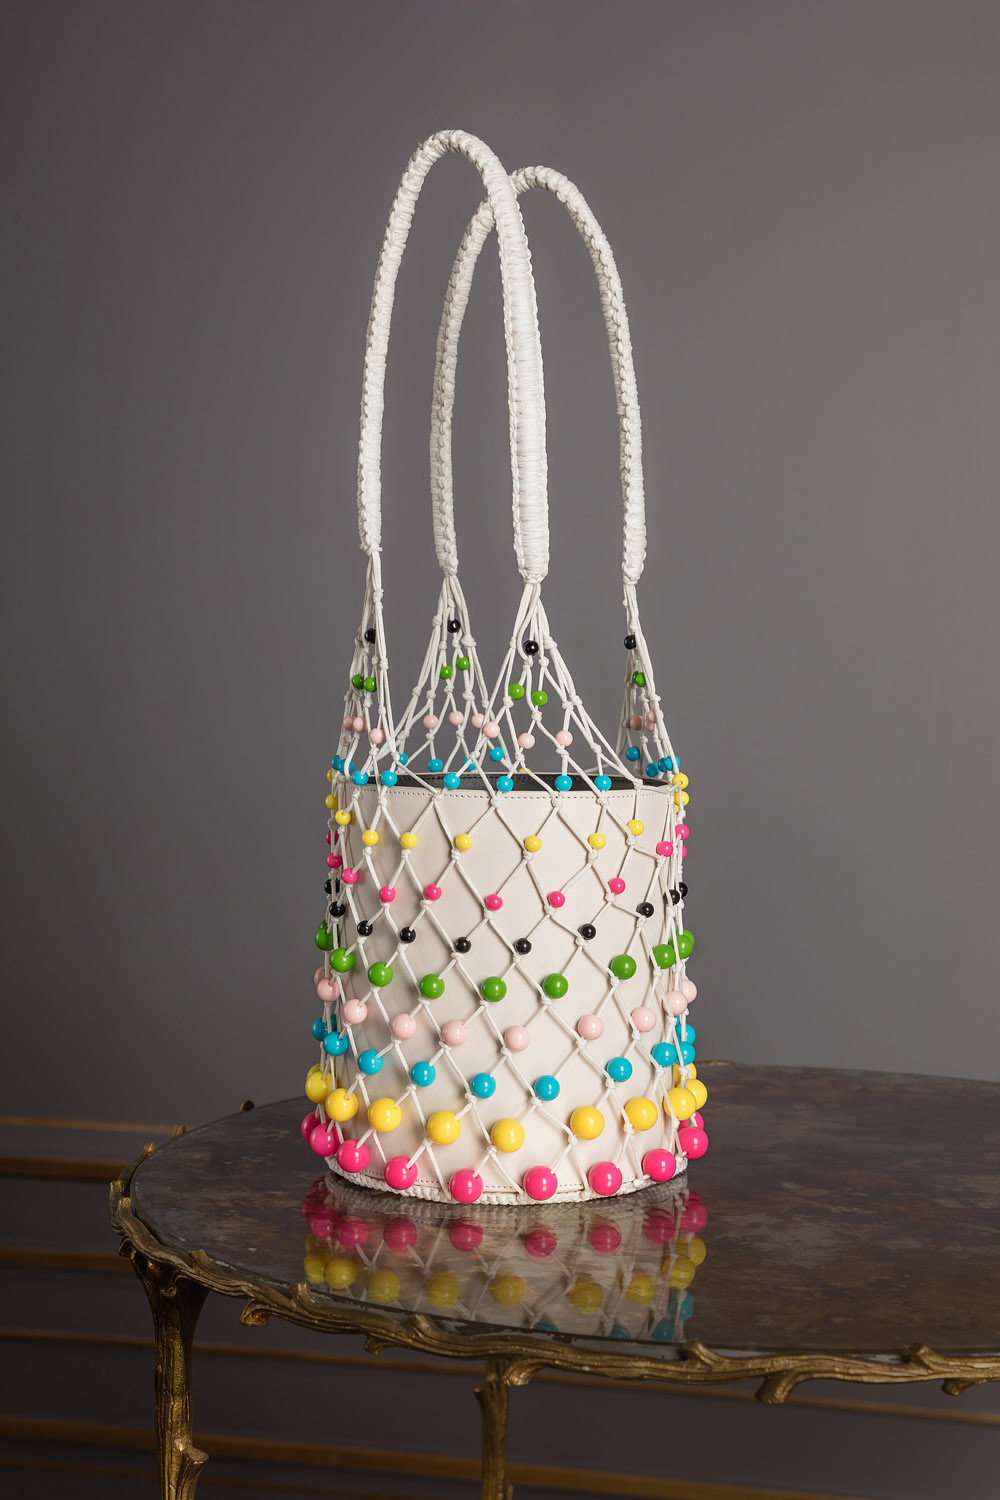 Goat leather bag in sugar white with white netting and bubble-gum colored beads